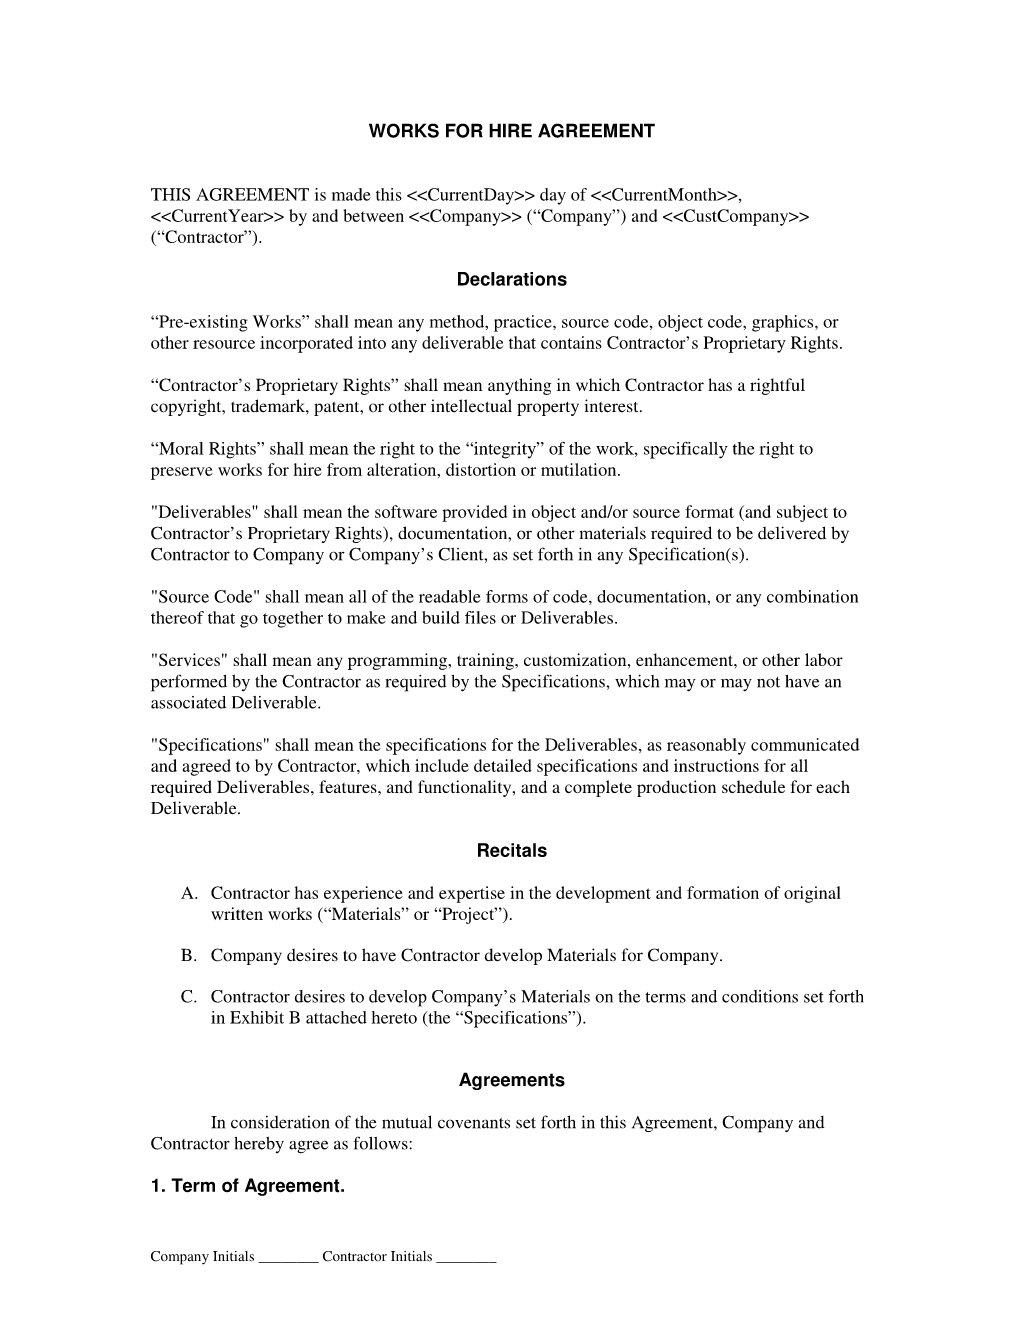 Works For Hire Agreement : General Service/Product Contracts ...   Legal  Agreement